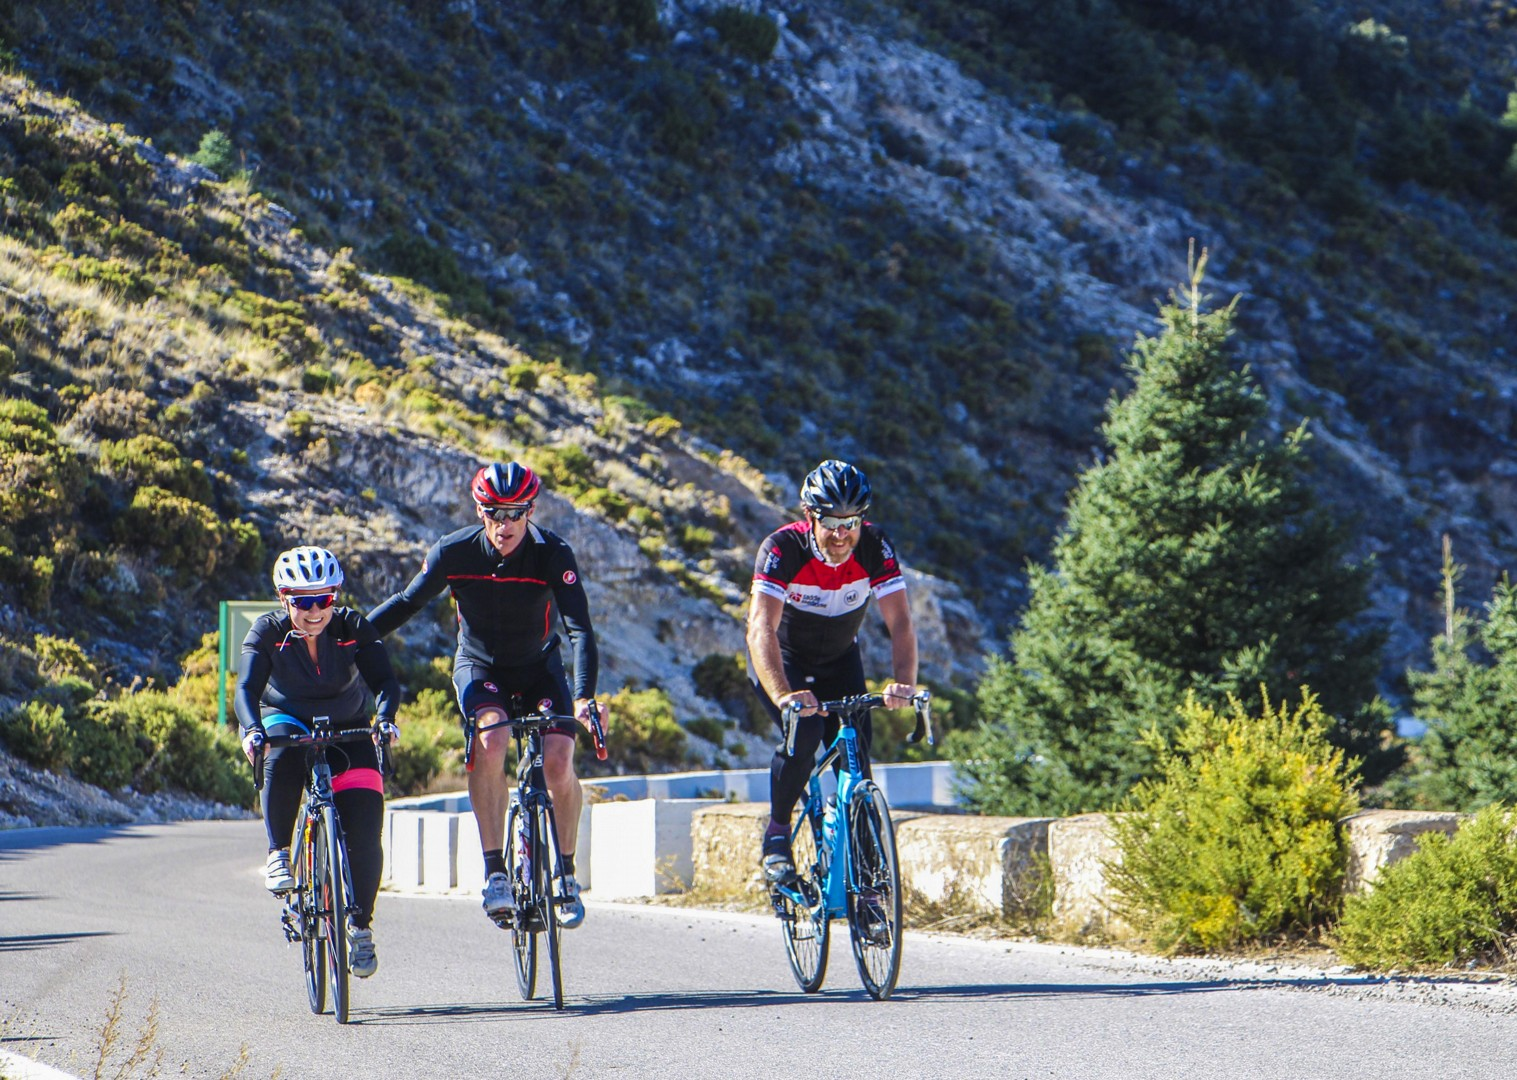 guided-road-cycling-adventure-roads-of-ronda-friendly-atmosphere-group.jpg - Southern Spain - Roads of Ronda - Road Cycling